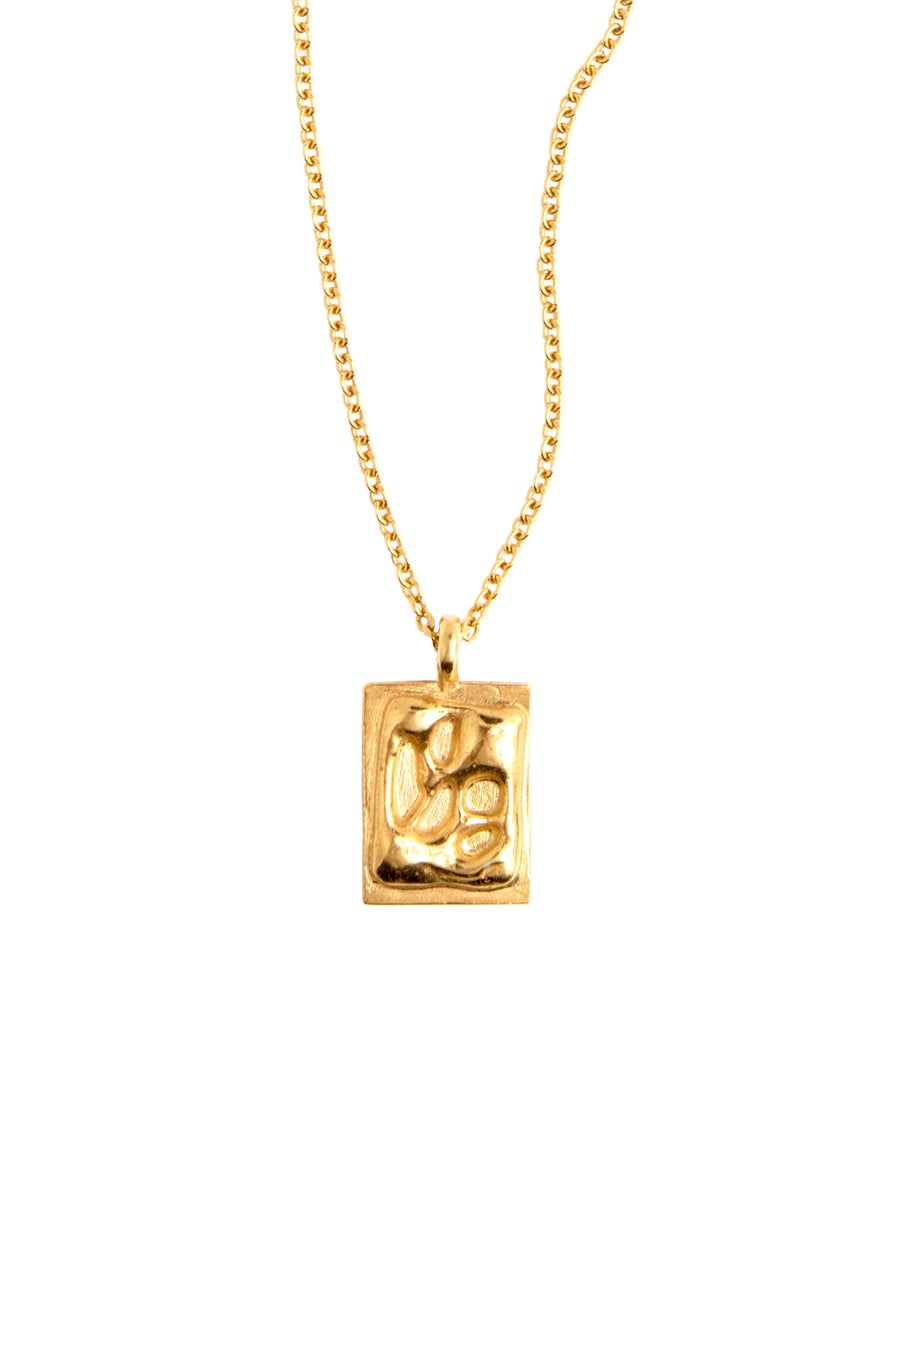 Image of Style 01 - Gold Plated